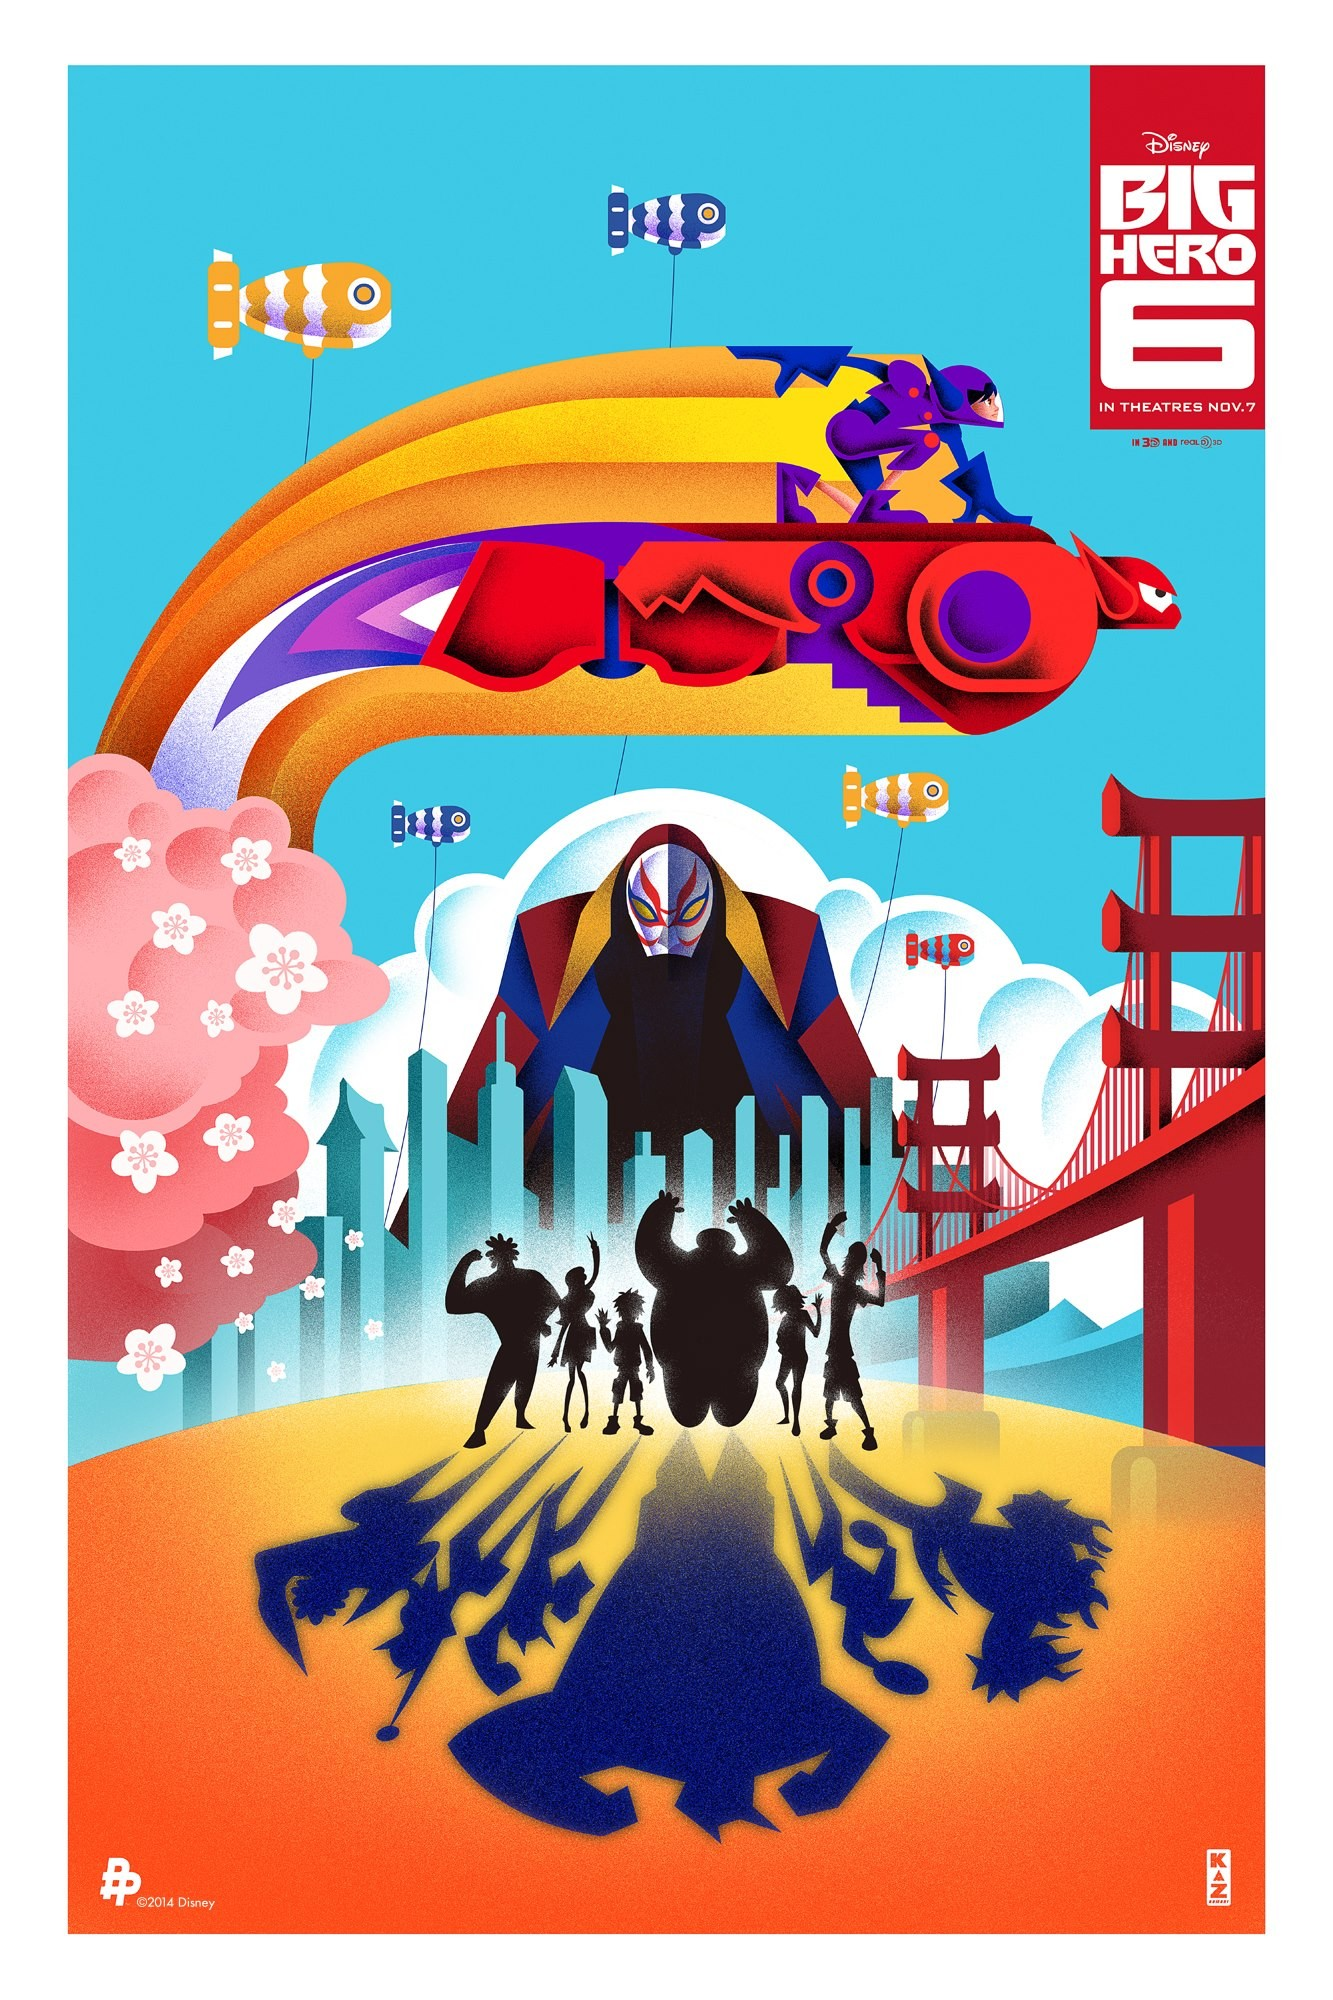 Big Hero 6-Official Poster Banner POSTER XLG-09OUTUBRO2014-00